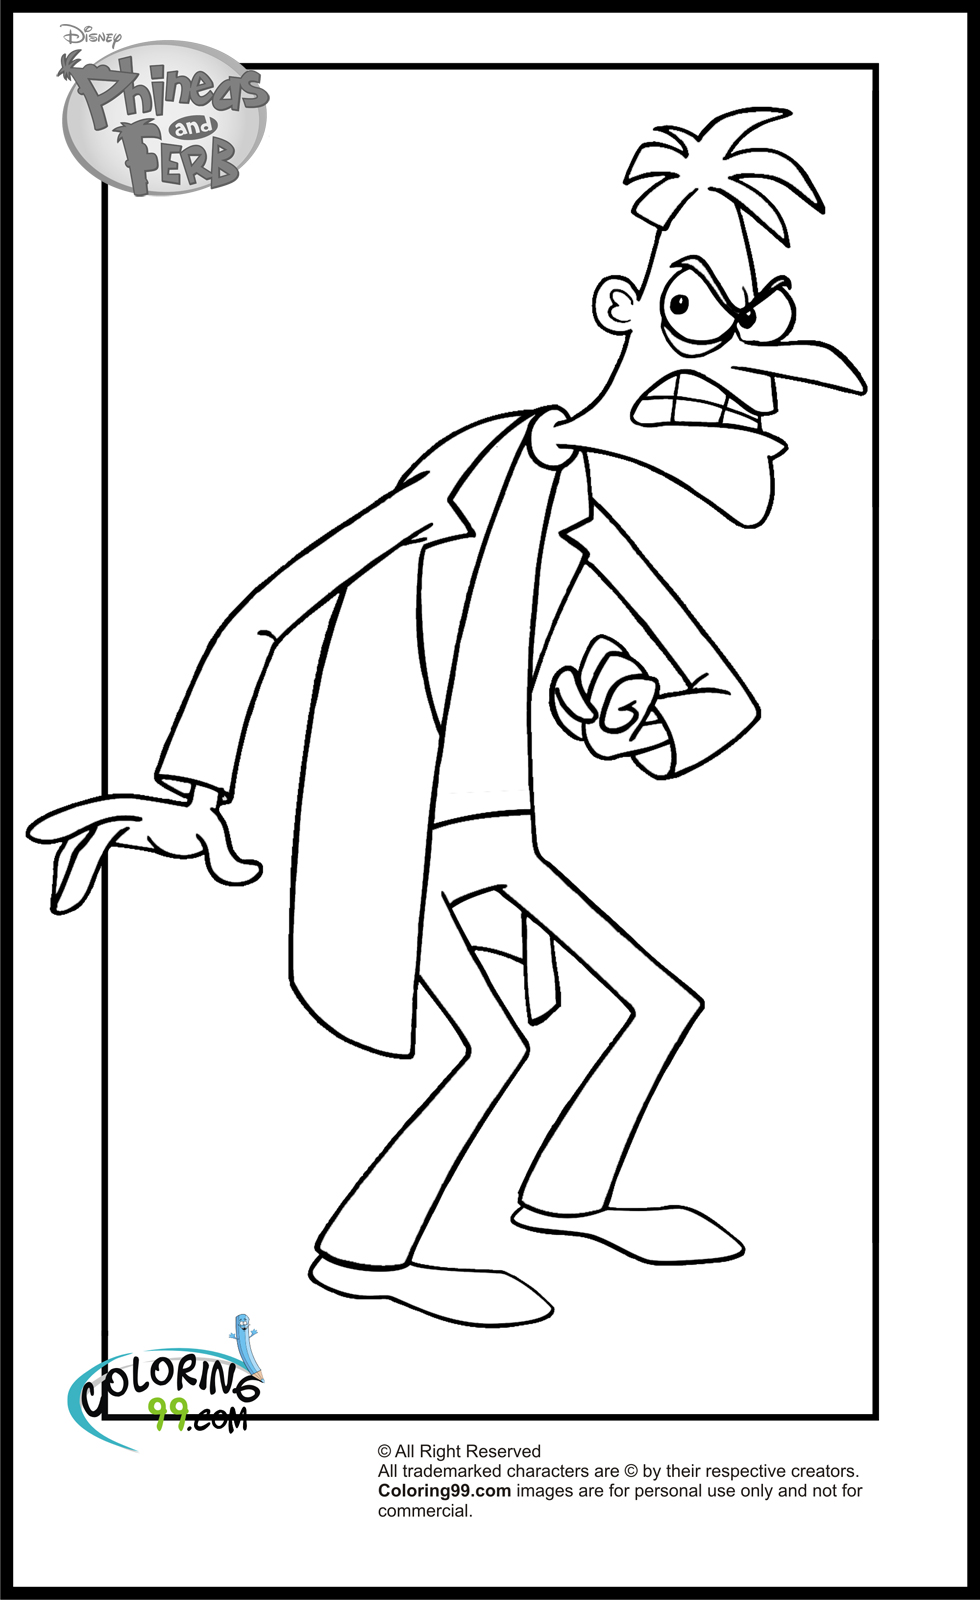 phineas and ferb coloring pages phineas and ferb coloring pages free printable coloring and phineas ferb coloring pages